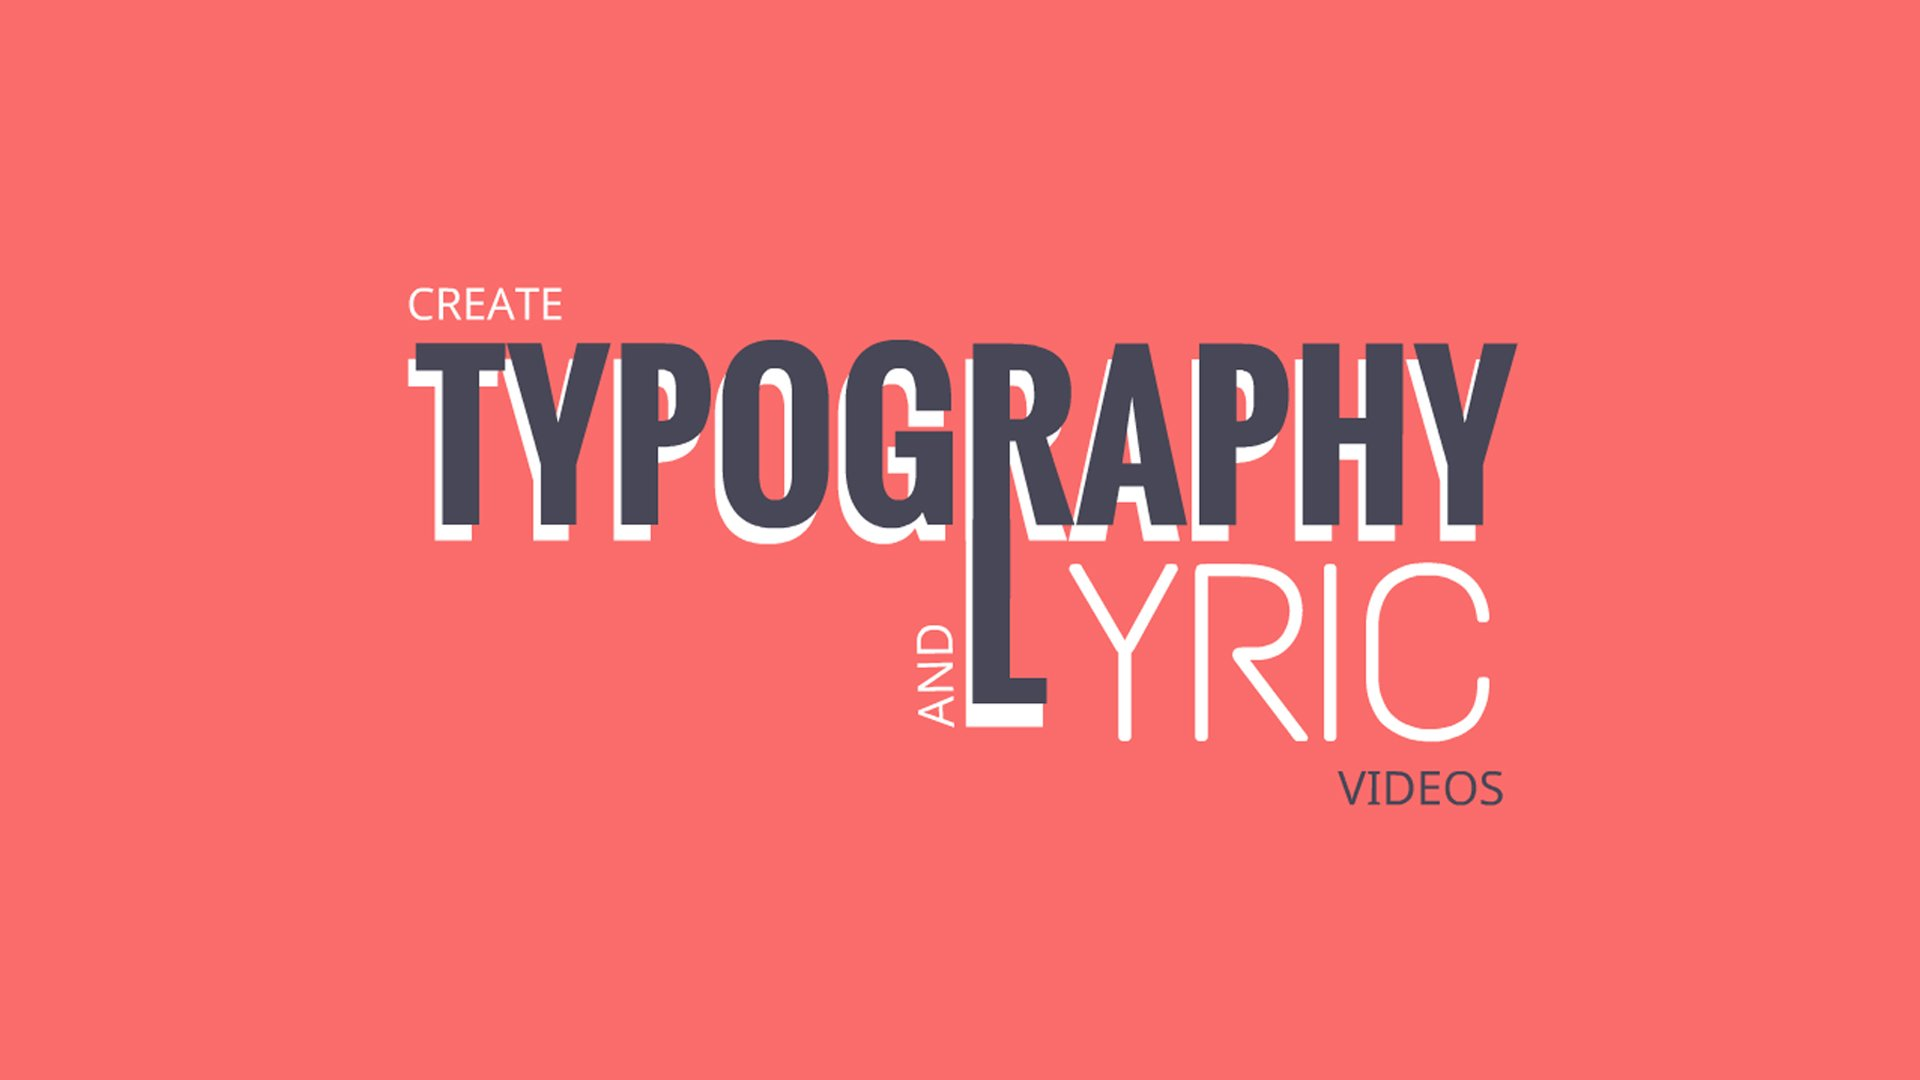 Lyrics Animated Explainer Video Software